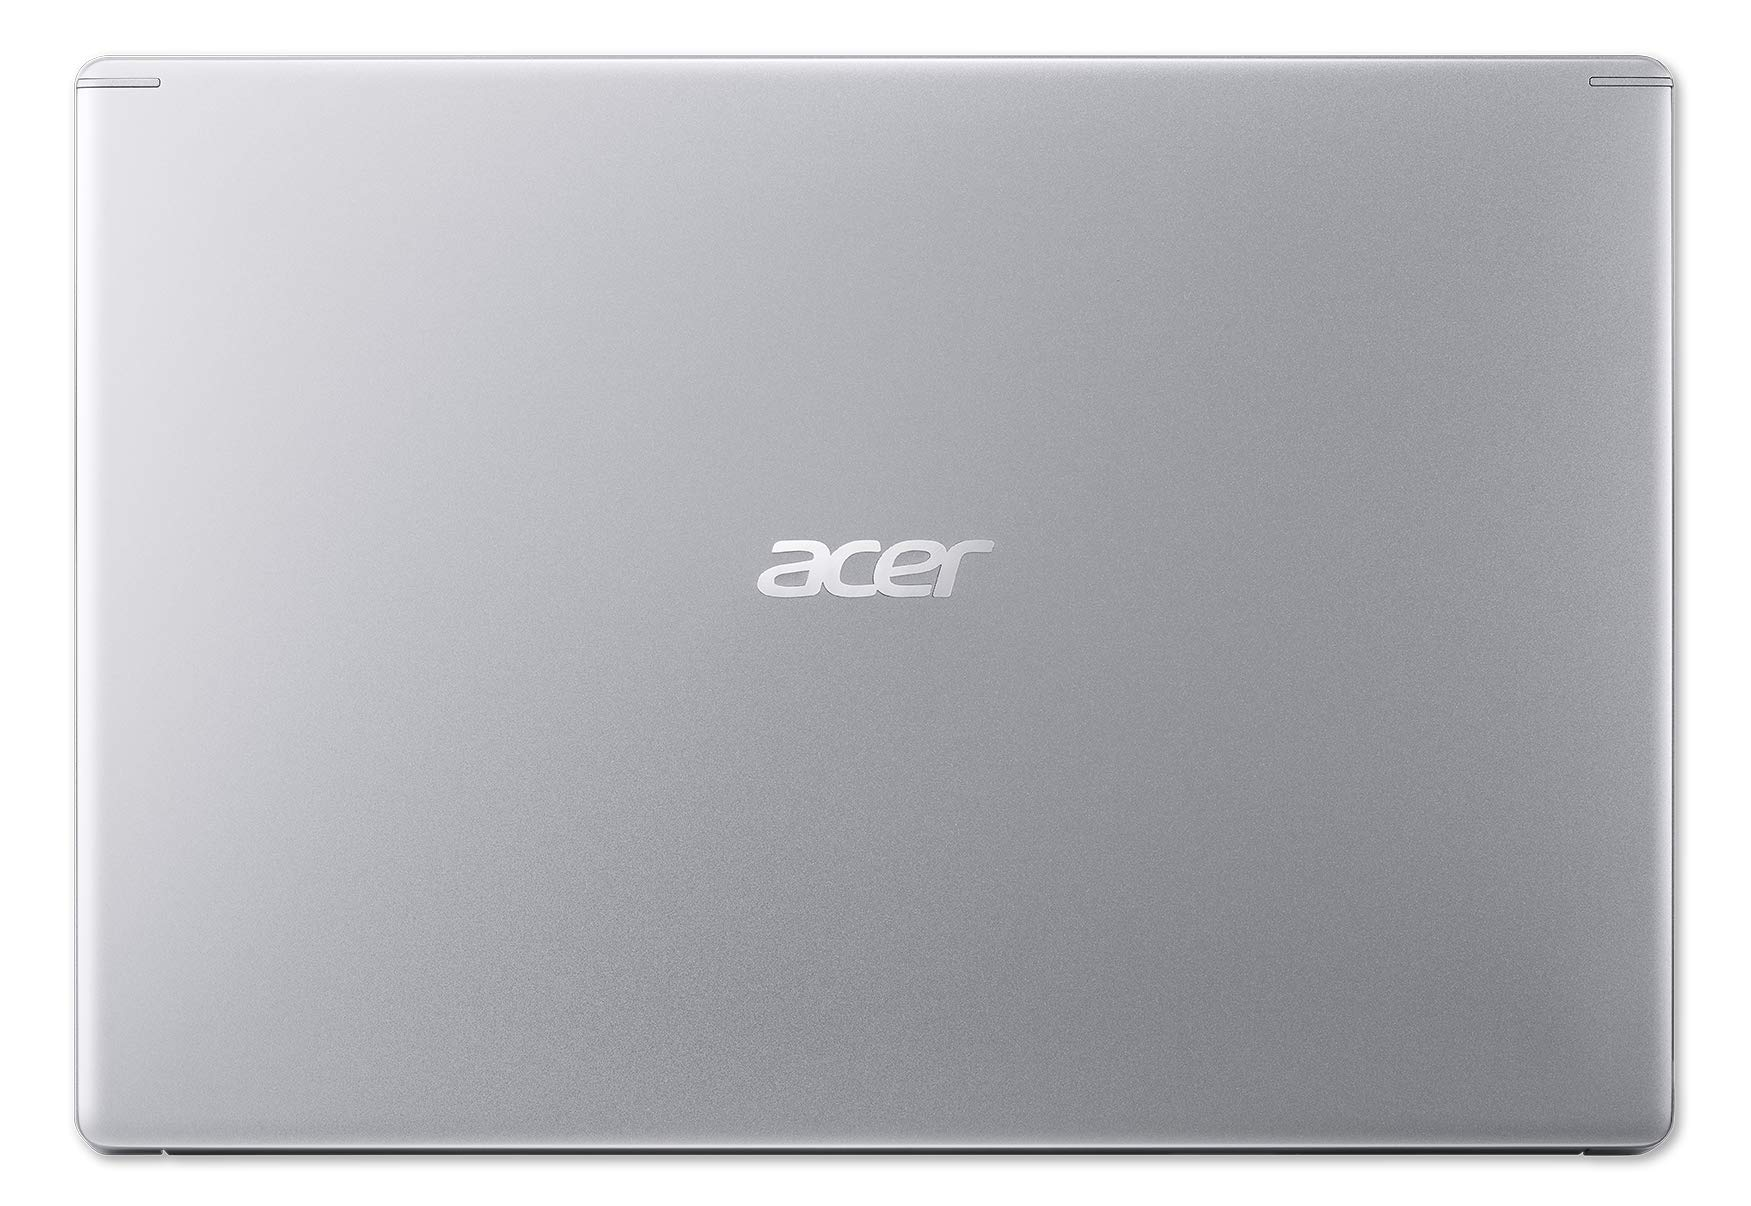 Acer Aspire 5, 15.6'' Full HD IPS Display, 8th Gen Intel Core i5-8265U, 8GB DDR4, 256GB PCIe NVMe SSD, Backlit Keyboard, Fingerprint Reader, Windows 10 Home, A515-54-51DJ by Acer (Image #11)